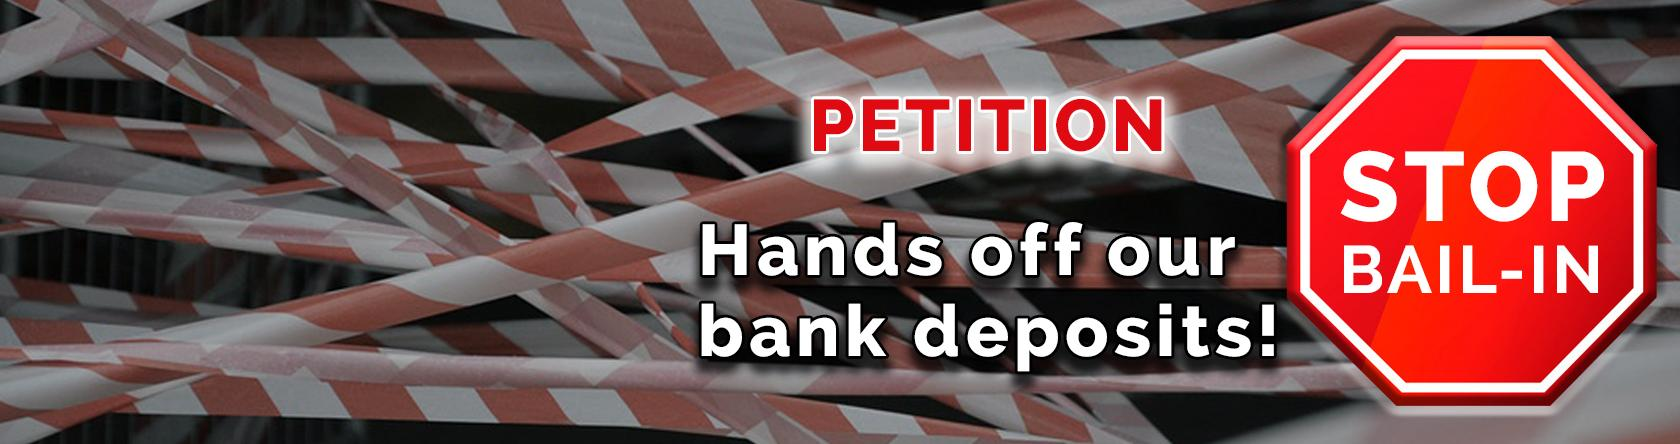 Hands off our bank deposits! - STOP BAIL-IN